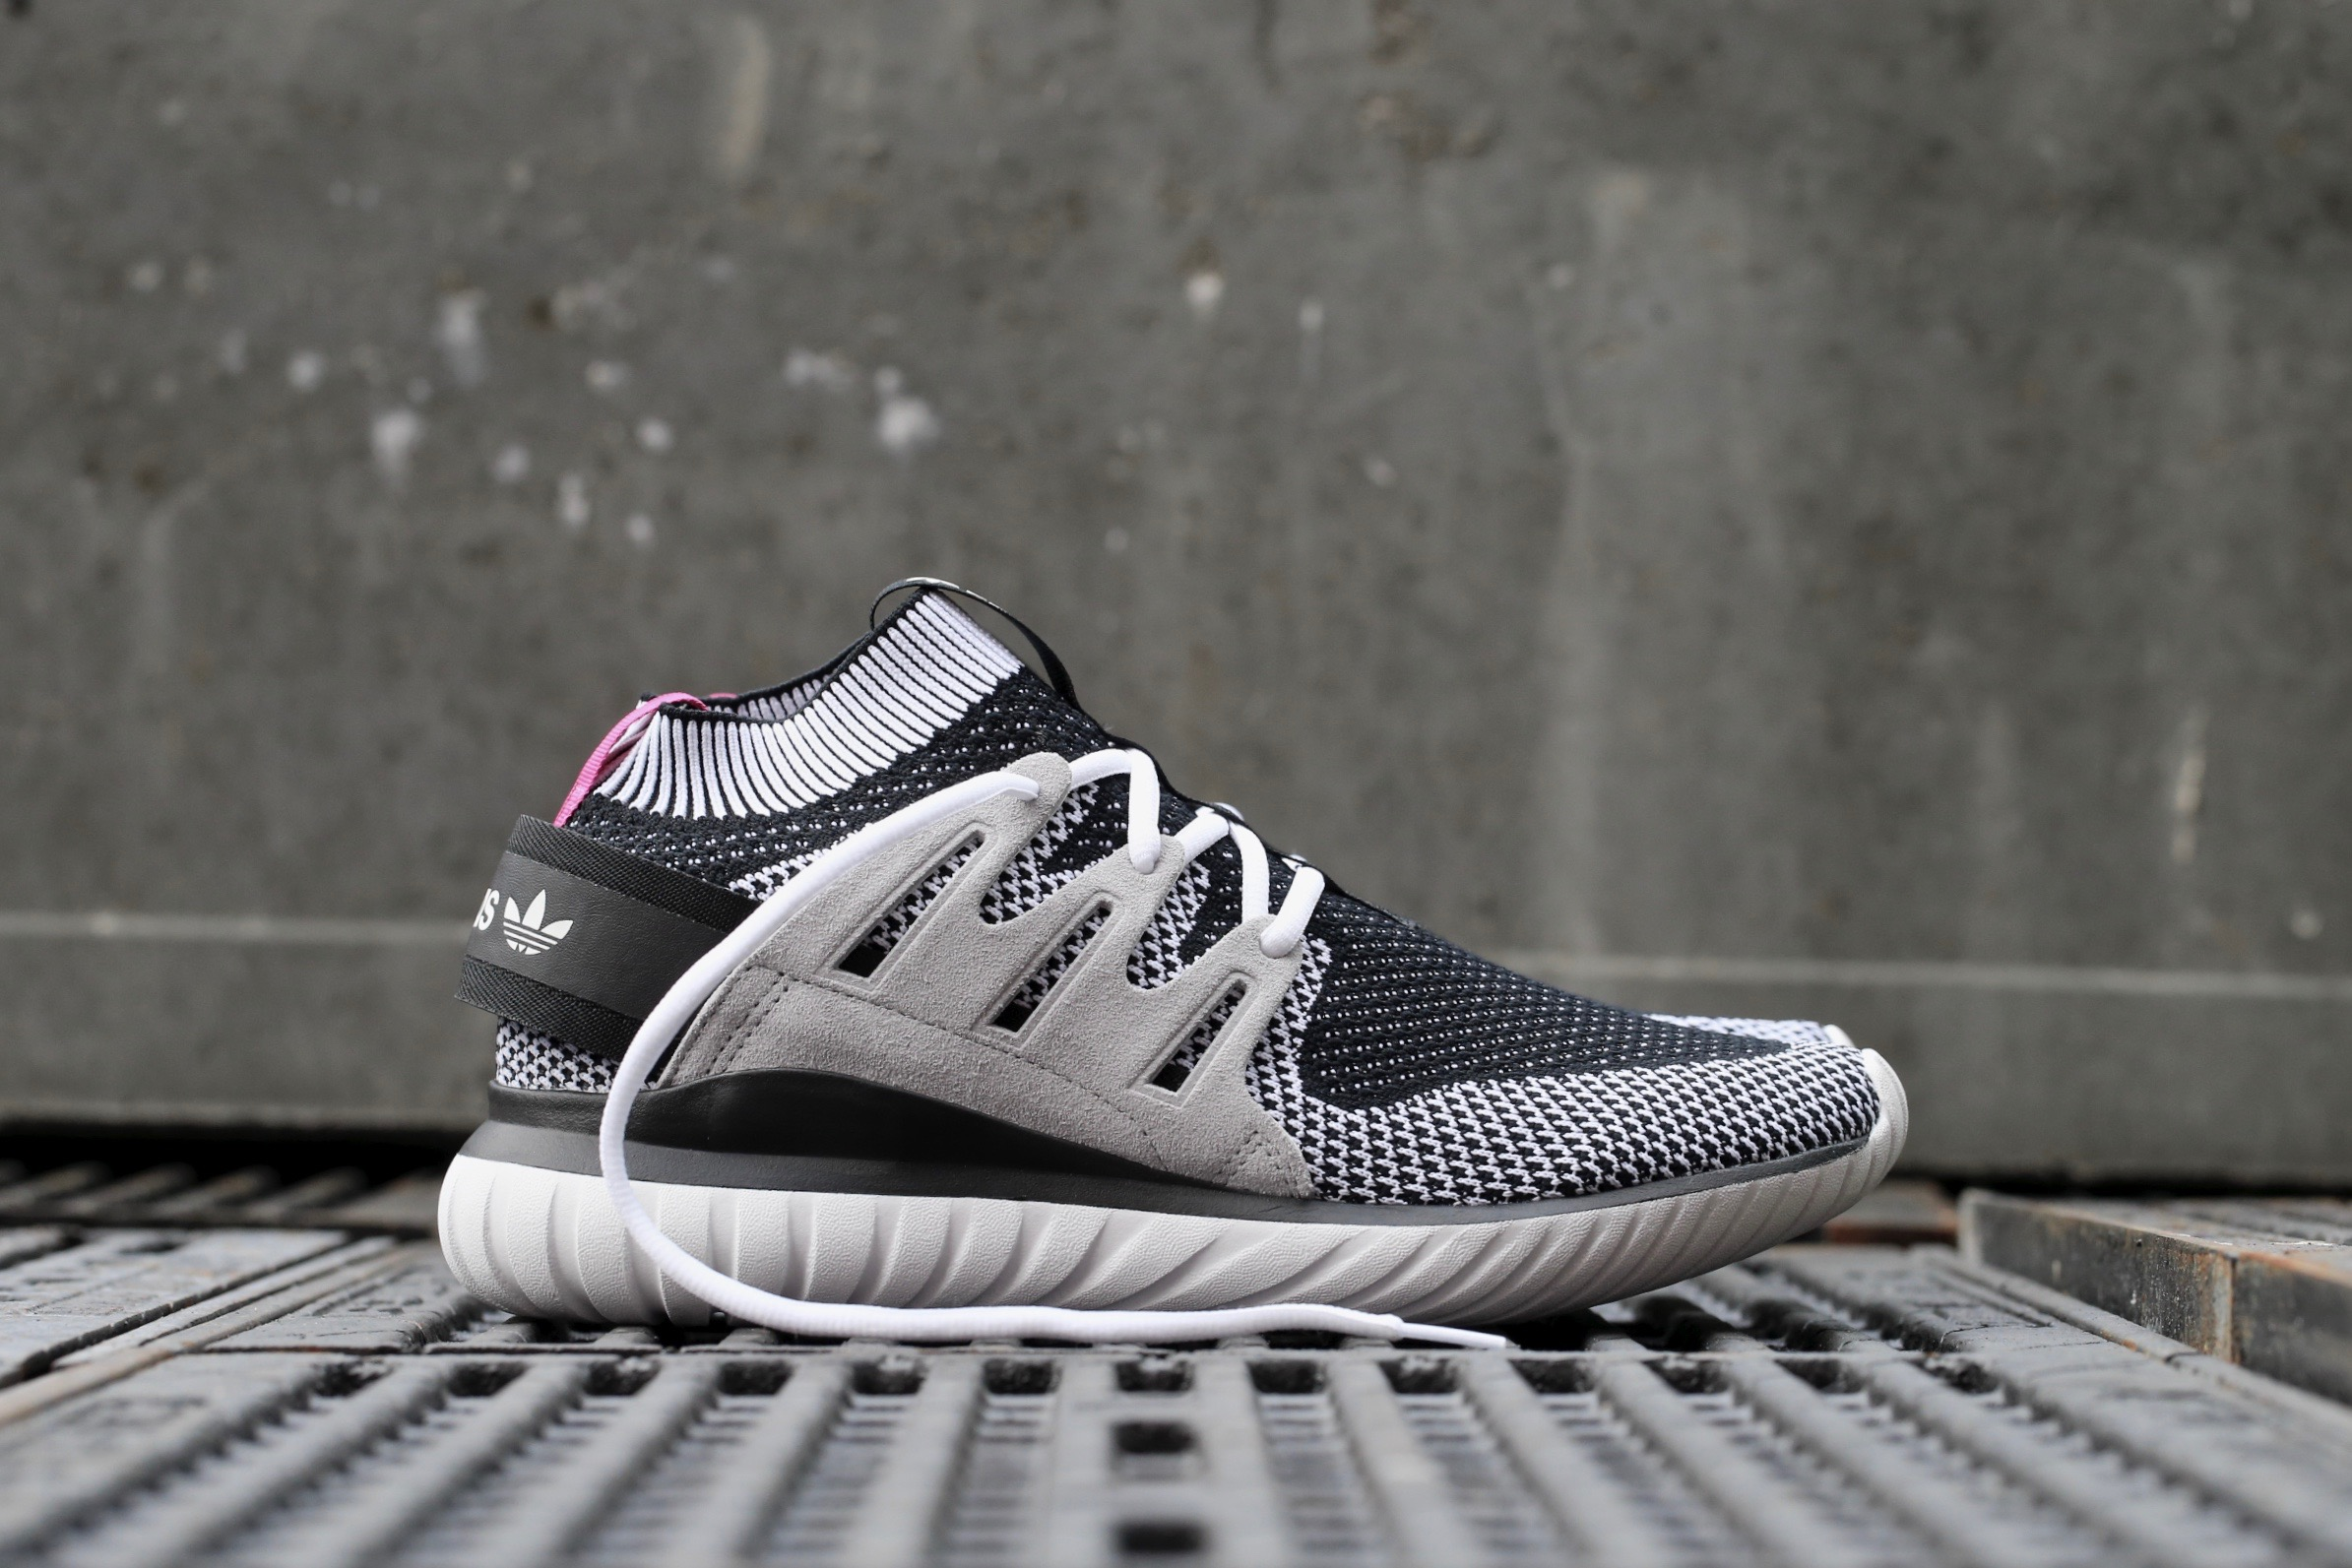 innovative design 01a7e 11402 adidas Originals Tubular Nova PK - Ftwr White / Vintage White / Core Black